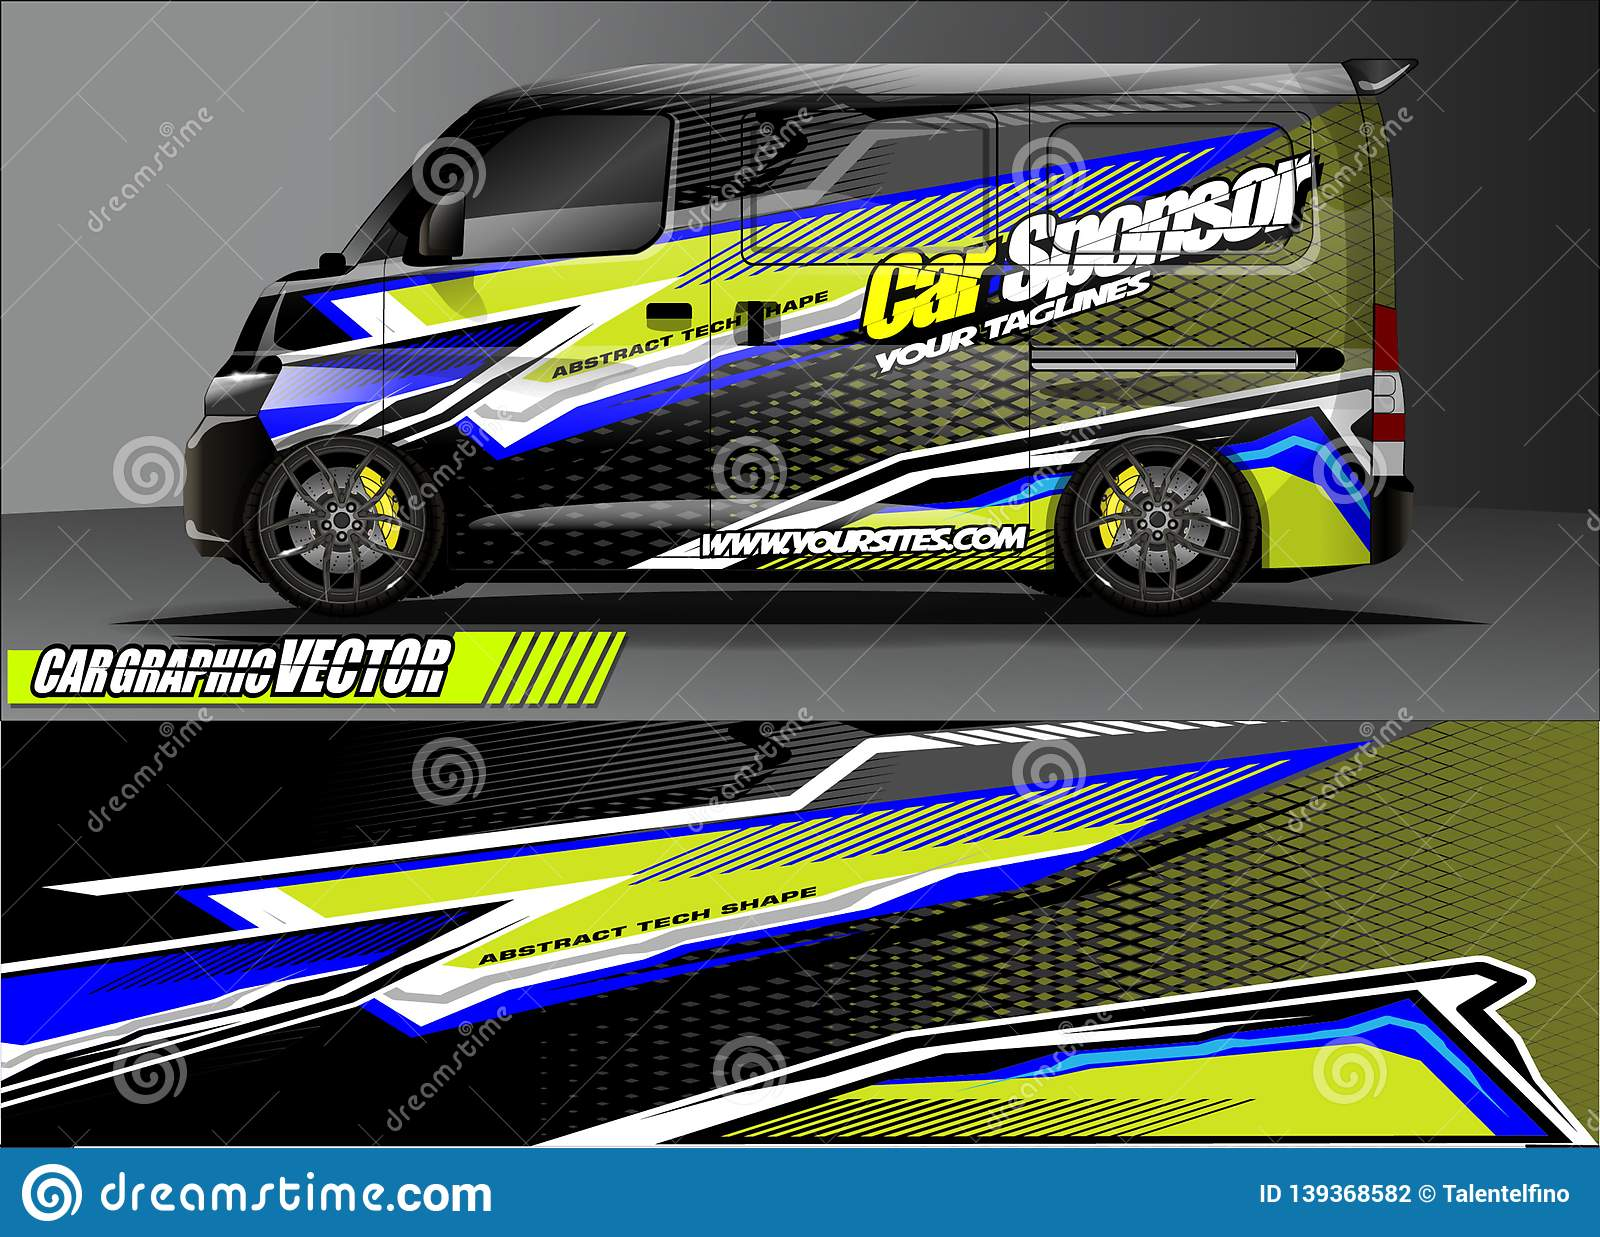 f593bbdafe Van livery graphic vector. abstract grunge background design for vehicle  vinyl wrap and car branding